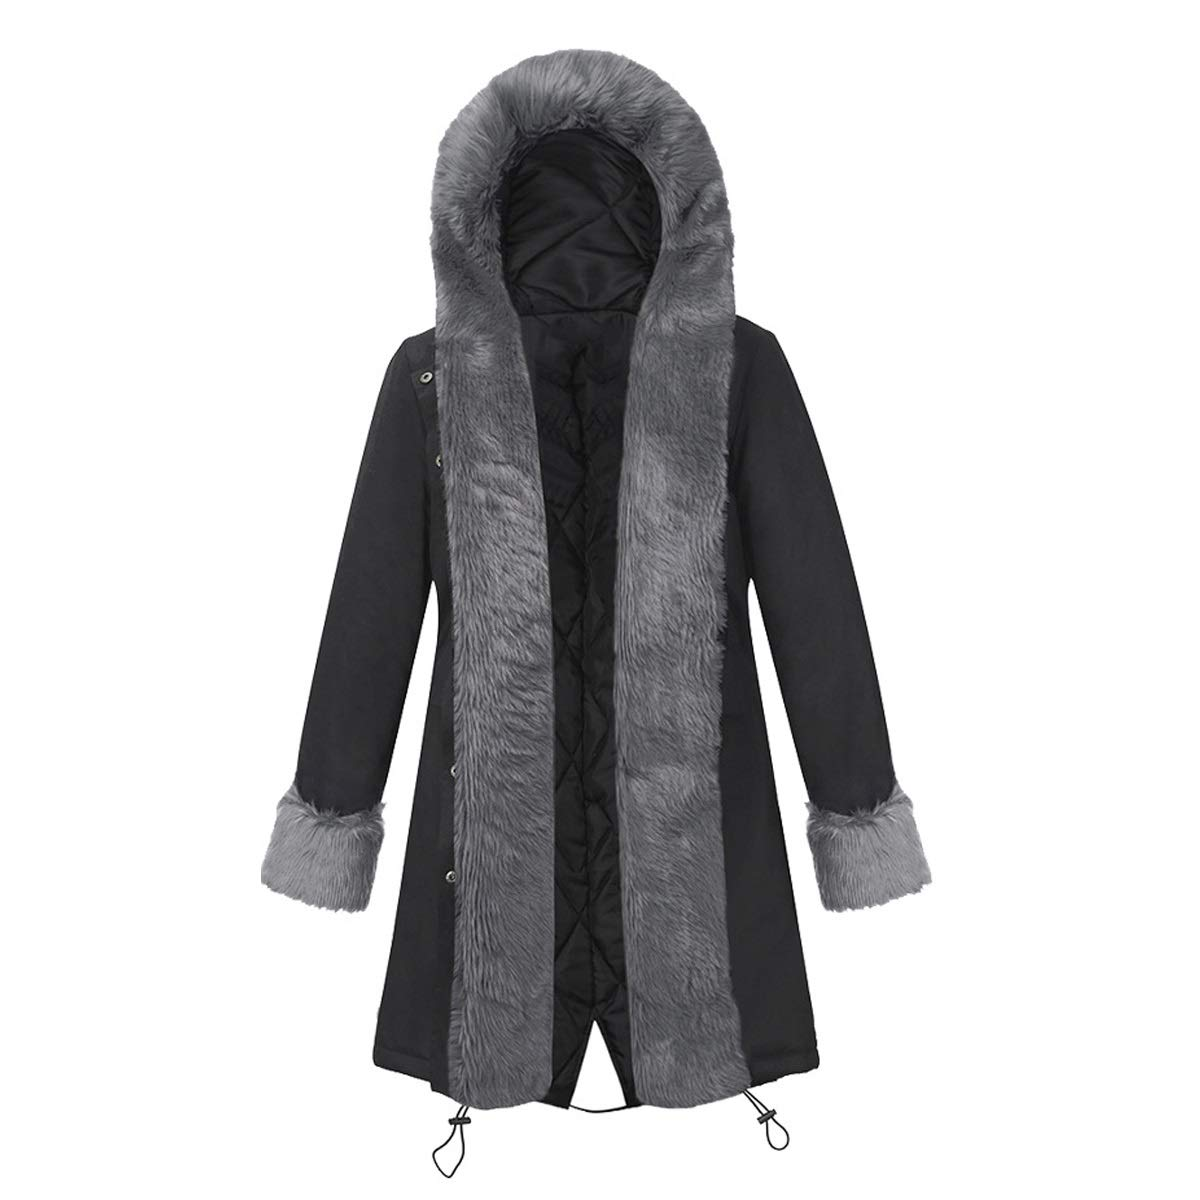 Black5 Womens Winter Warm Thicken Long Sleeve Faux Fur Collar Hooded Parka Jacket Coat